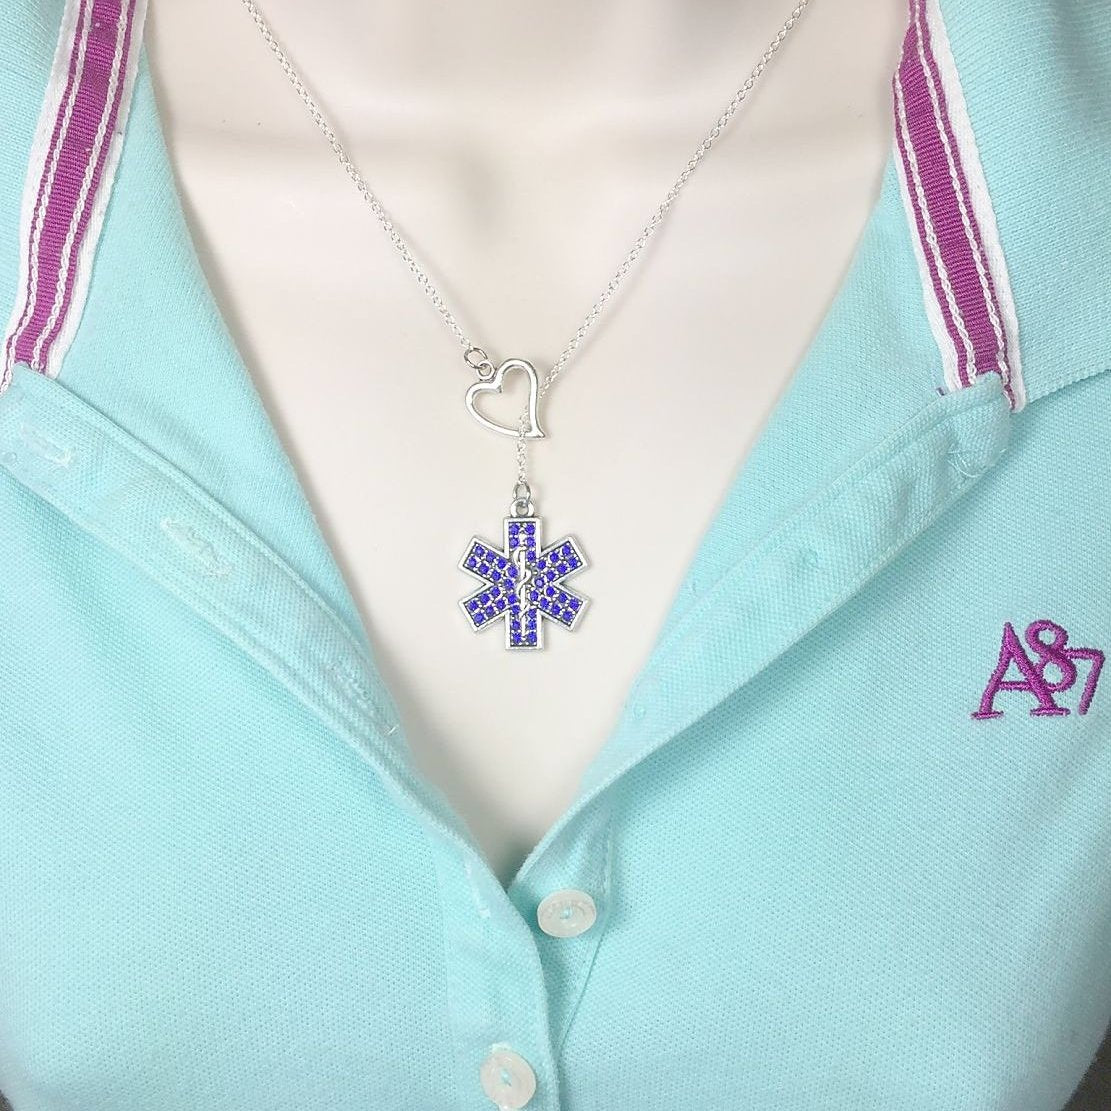 EMT, EMS, Star of Life Charm with Gem Y Necklace Lariat Style.